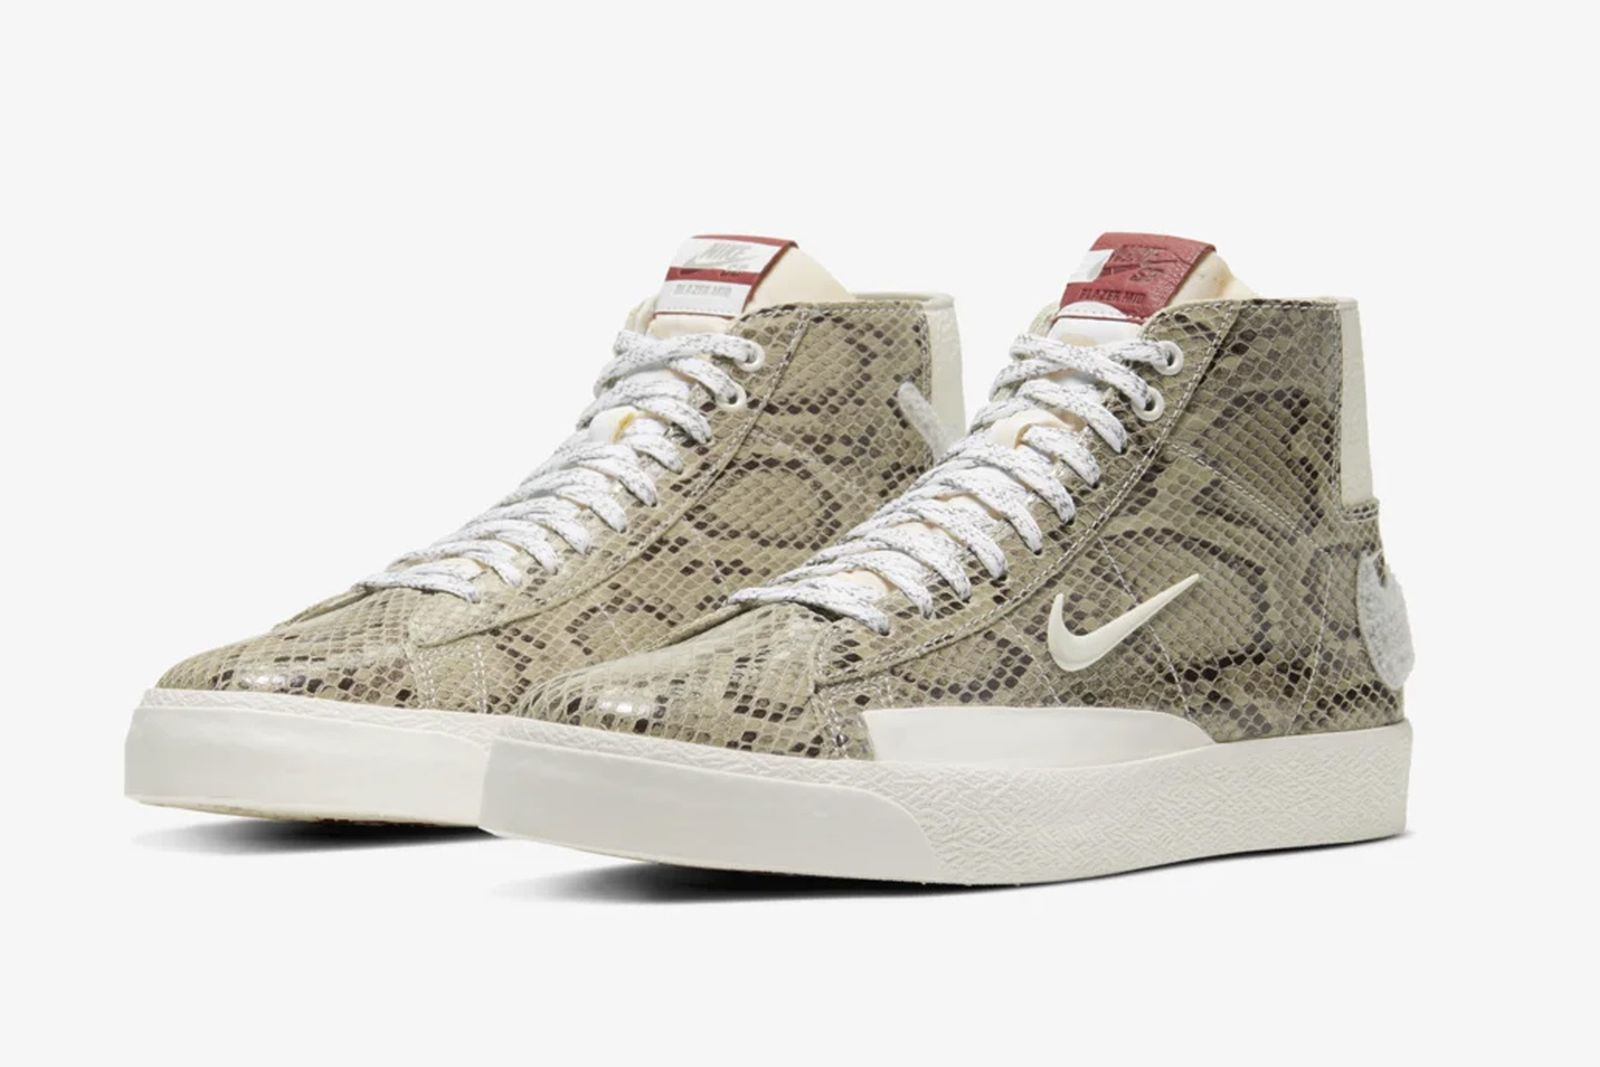 soulland-nike-blazer-mid-release-date-price-product-06